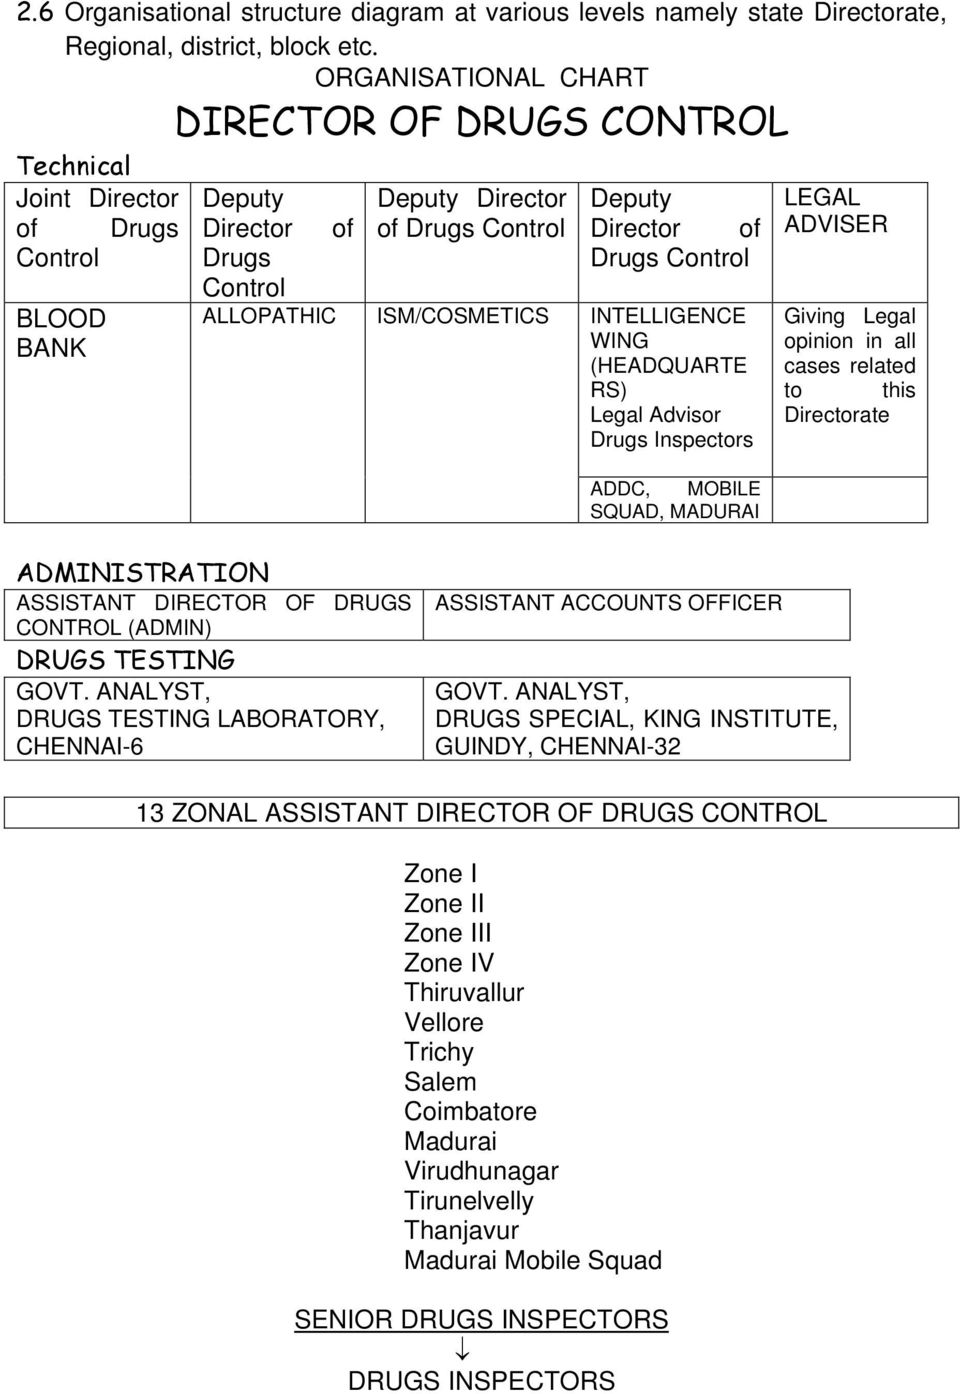 Director of Drugs Control INTELLIGENCE WING (HEADQUARTE RS) Legal Advisor Drugs Inspectors ADDC, MOBILE SQUAD, MADURAI LEGAL ADVISER Giving Legal opinion in all cases related to this Directorate